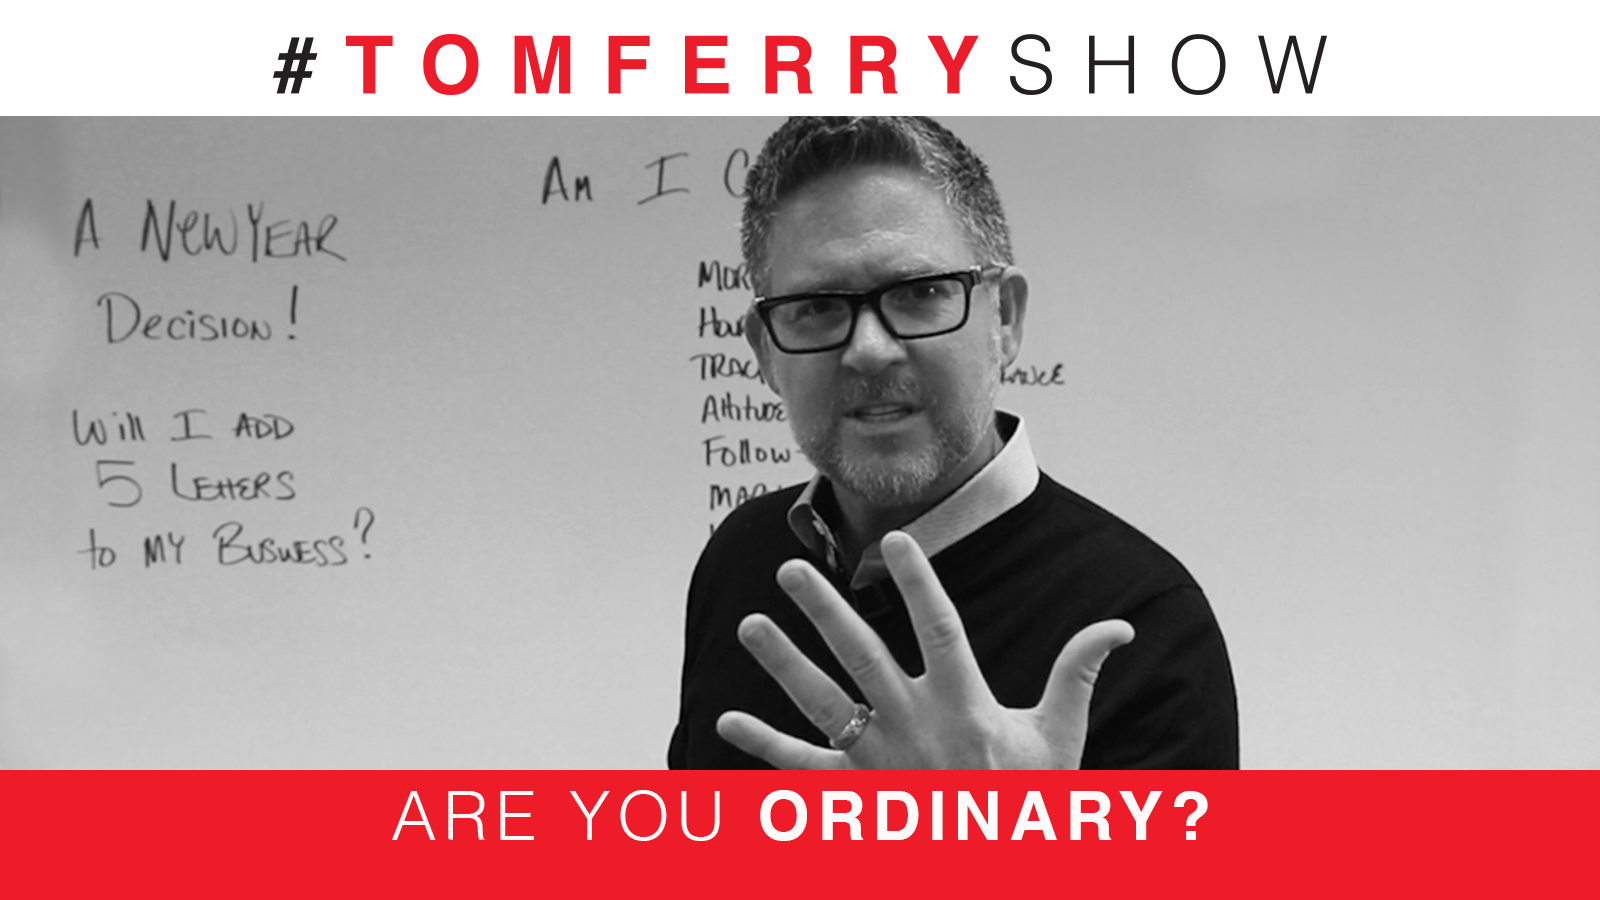 Add These 5 Letters To Your Business! – #TomFerryShow